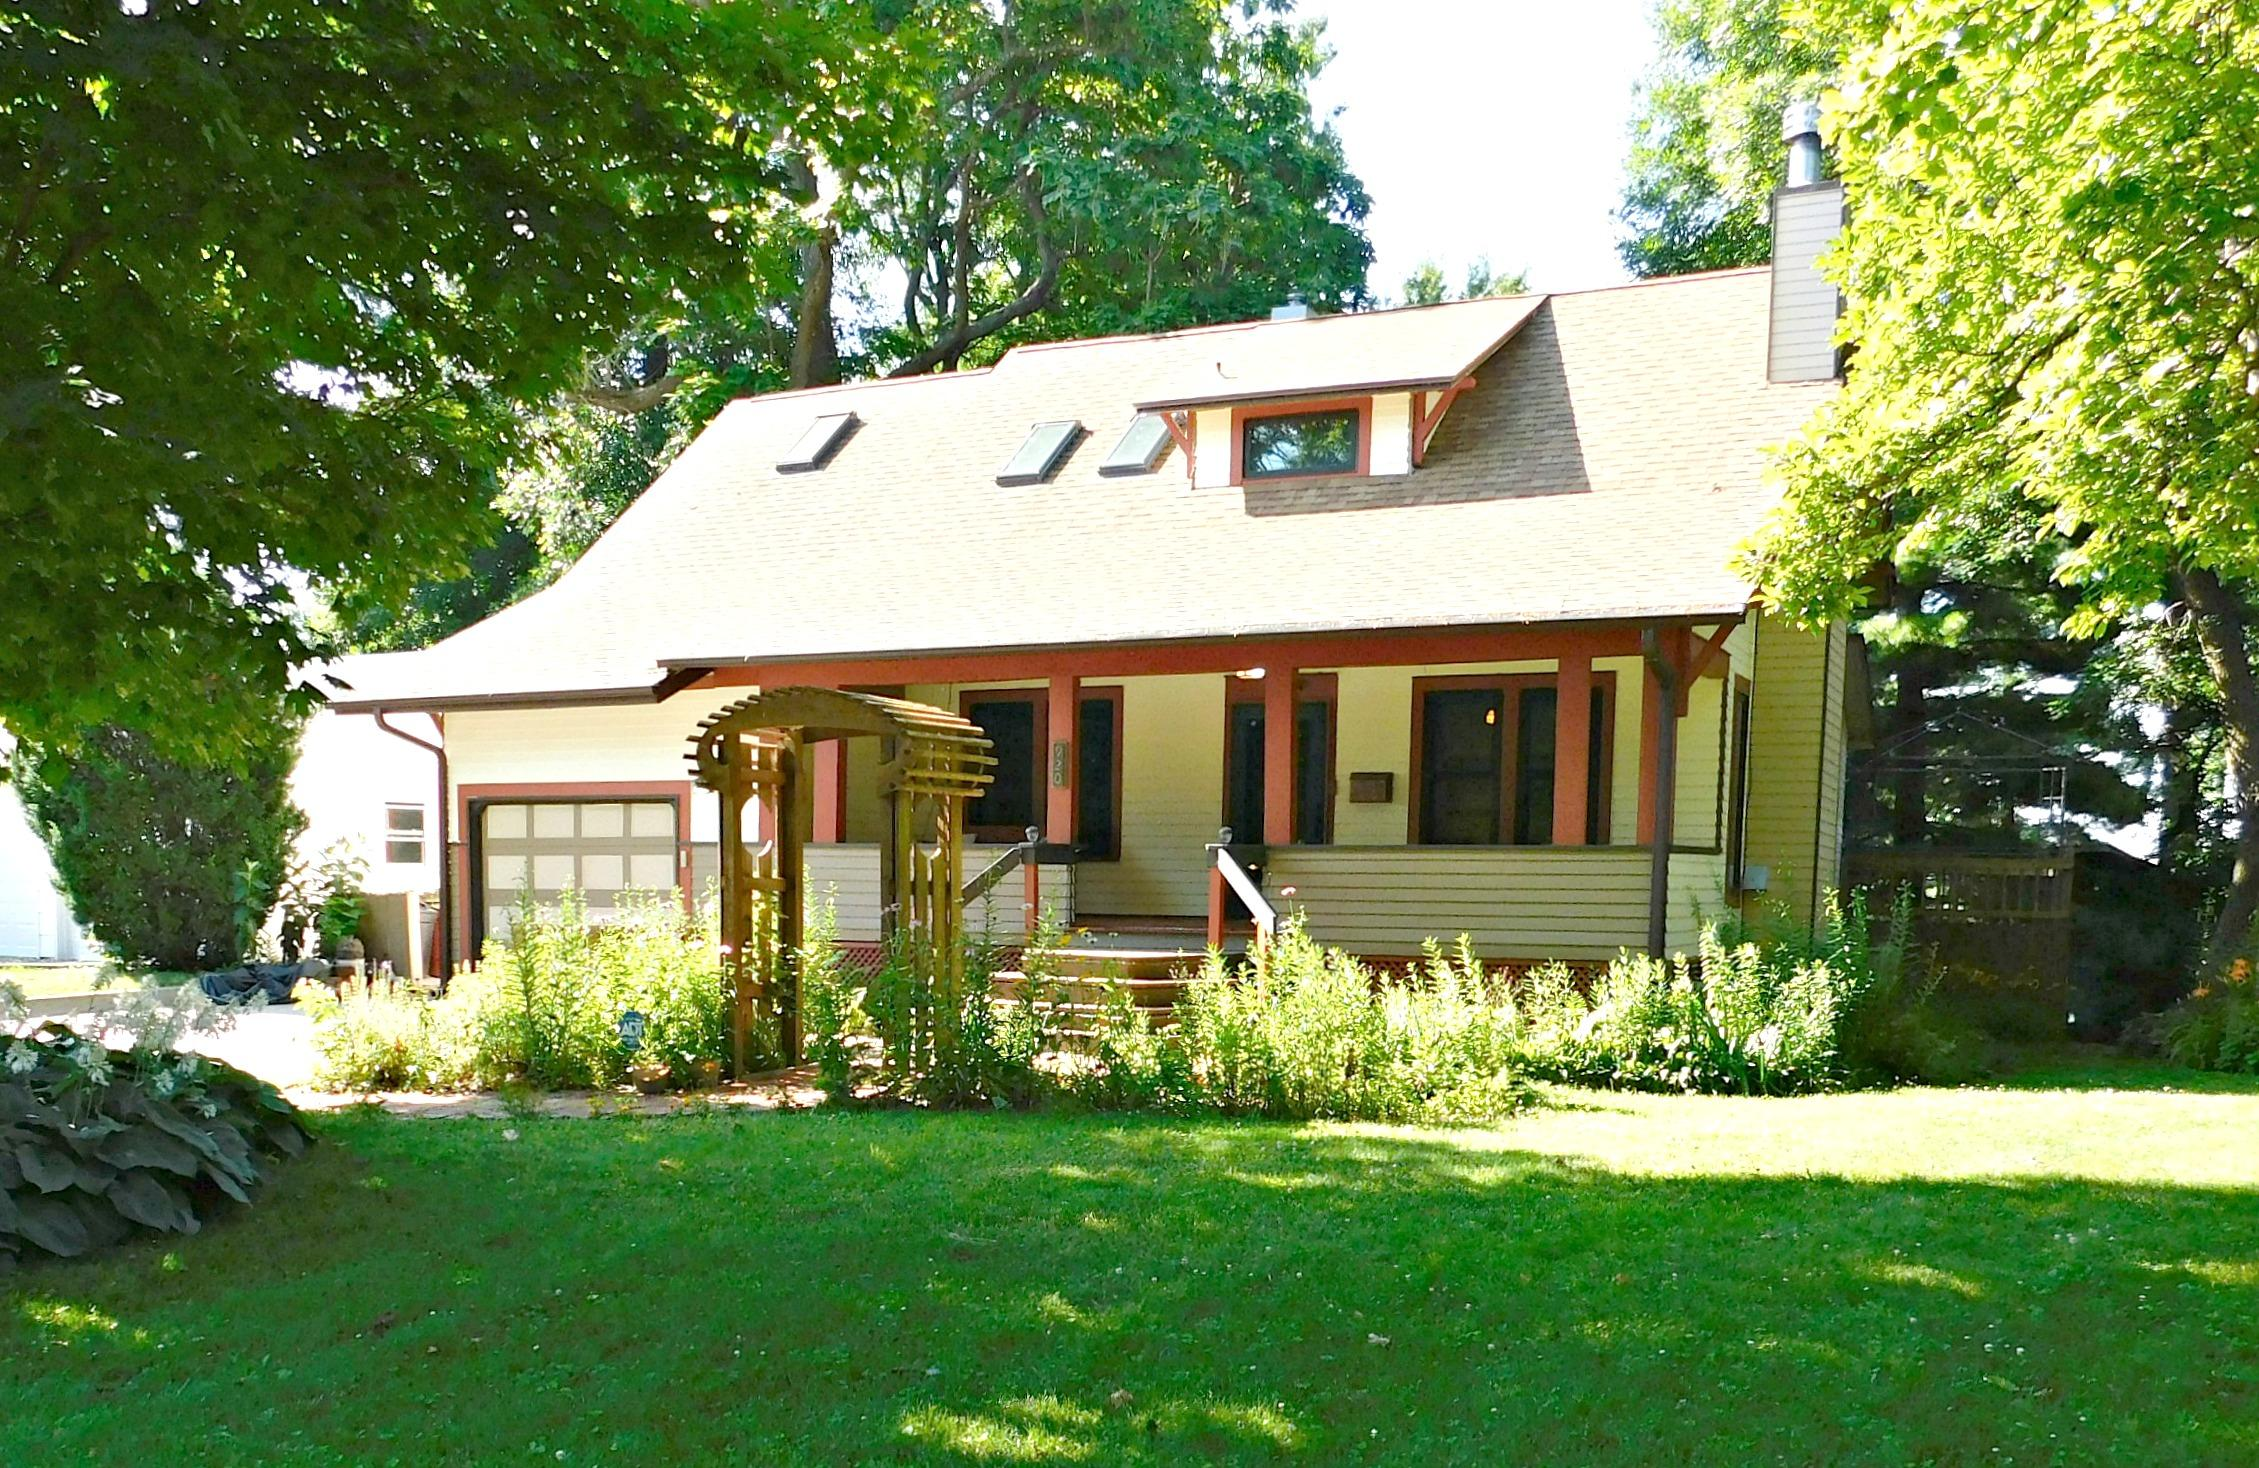 920 W 2ND ST, Maryville, Missouri 64468, 3 Bedrooms Bedrooms, ,2 BathroomsBathrooms,Residential,2ND,4502